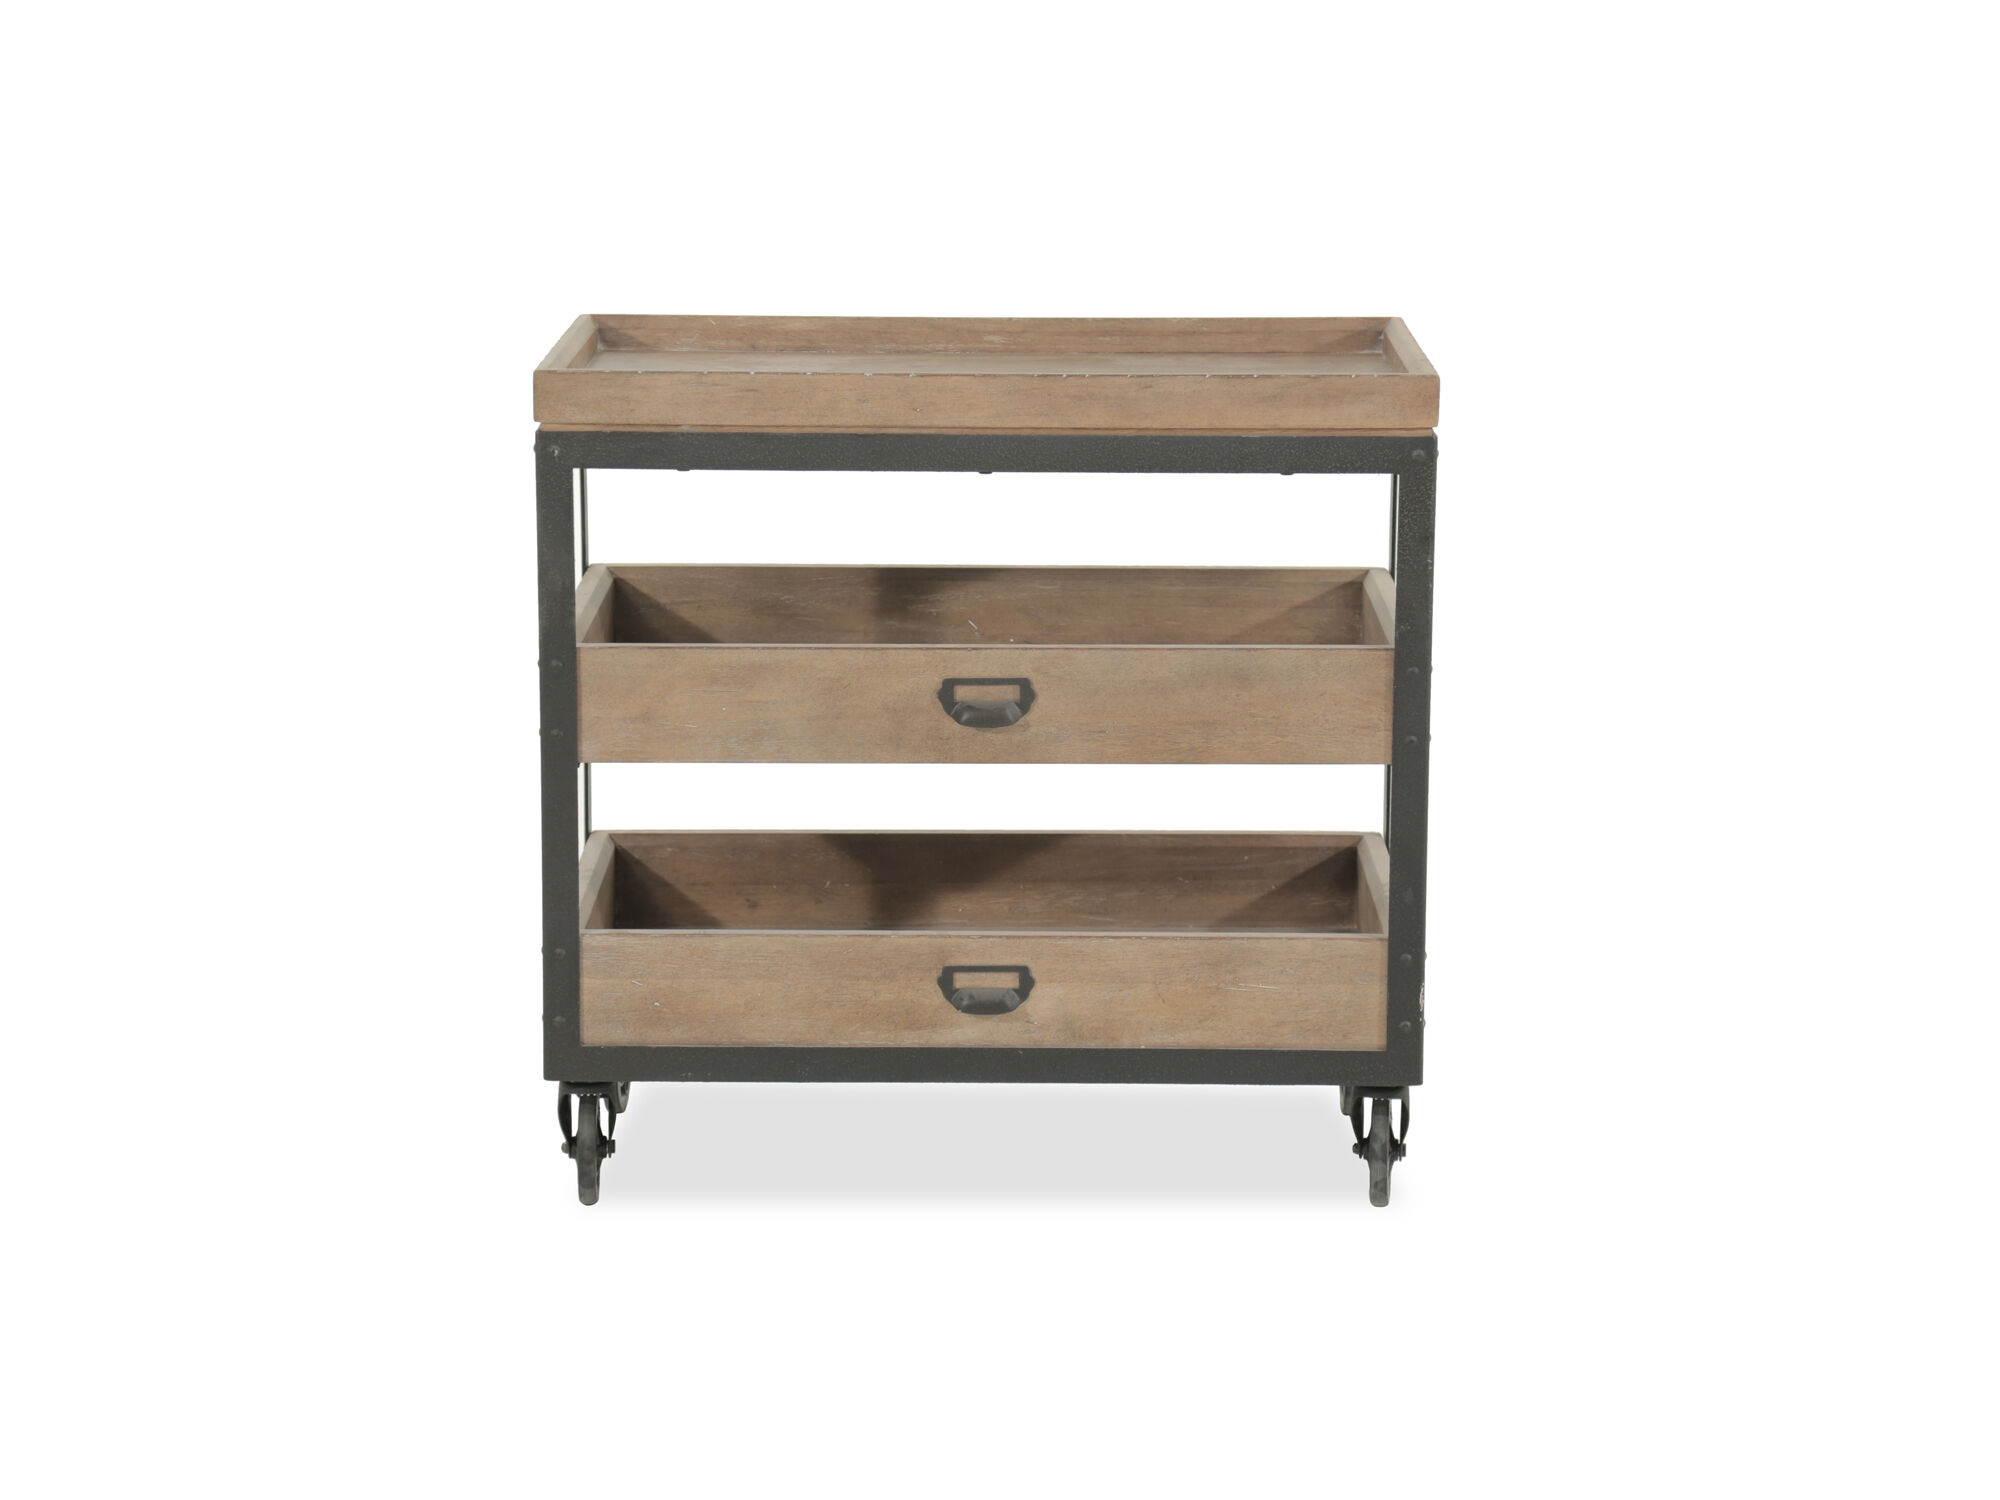 29 5 Contemporary Castered Accent Nightstand In Light Oak